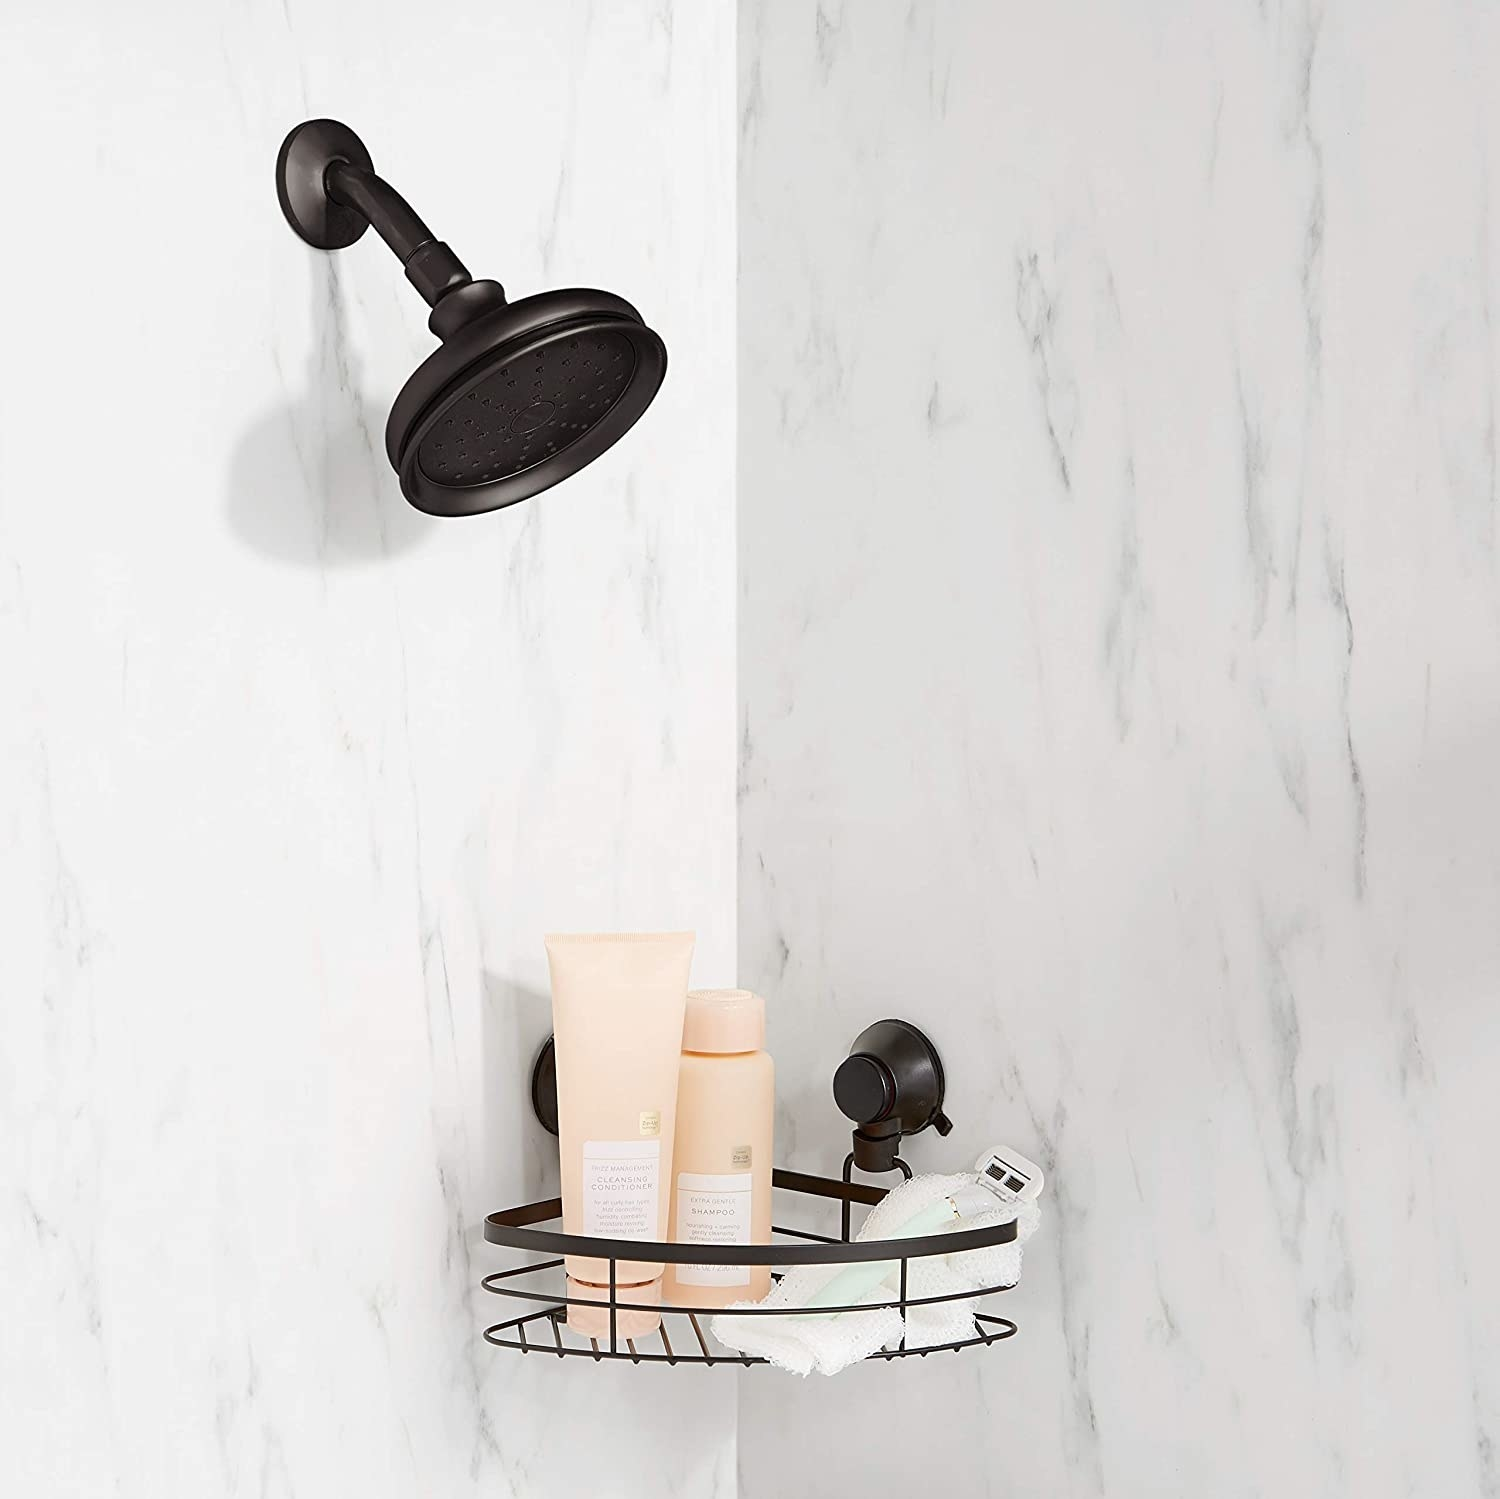 The shower caddy attached to the corner wall of a marble shower